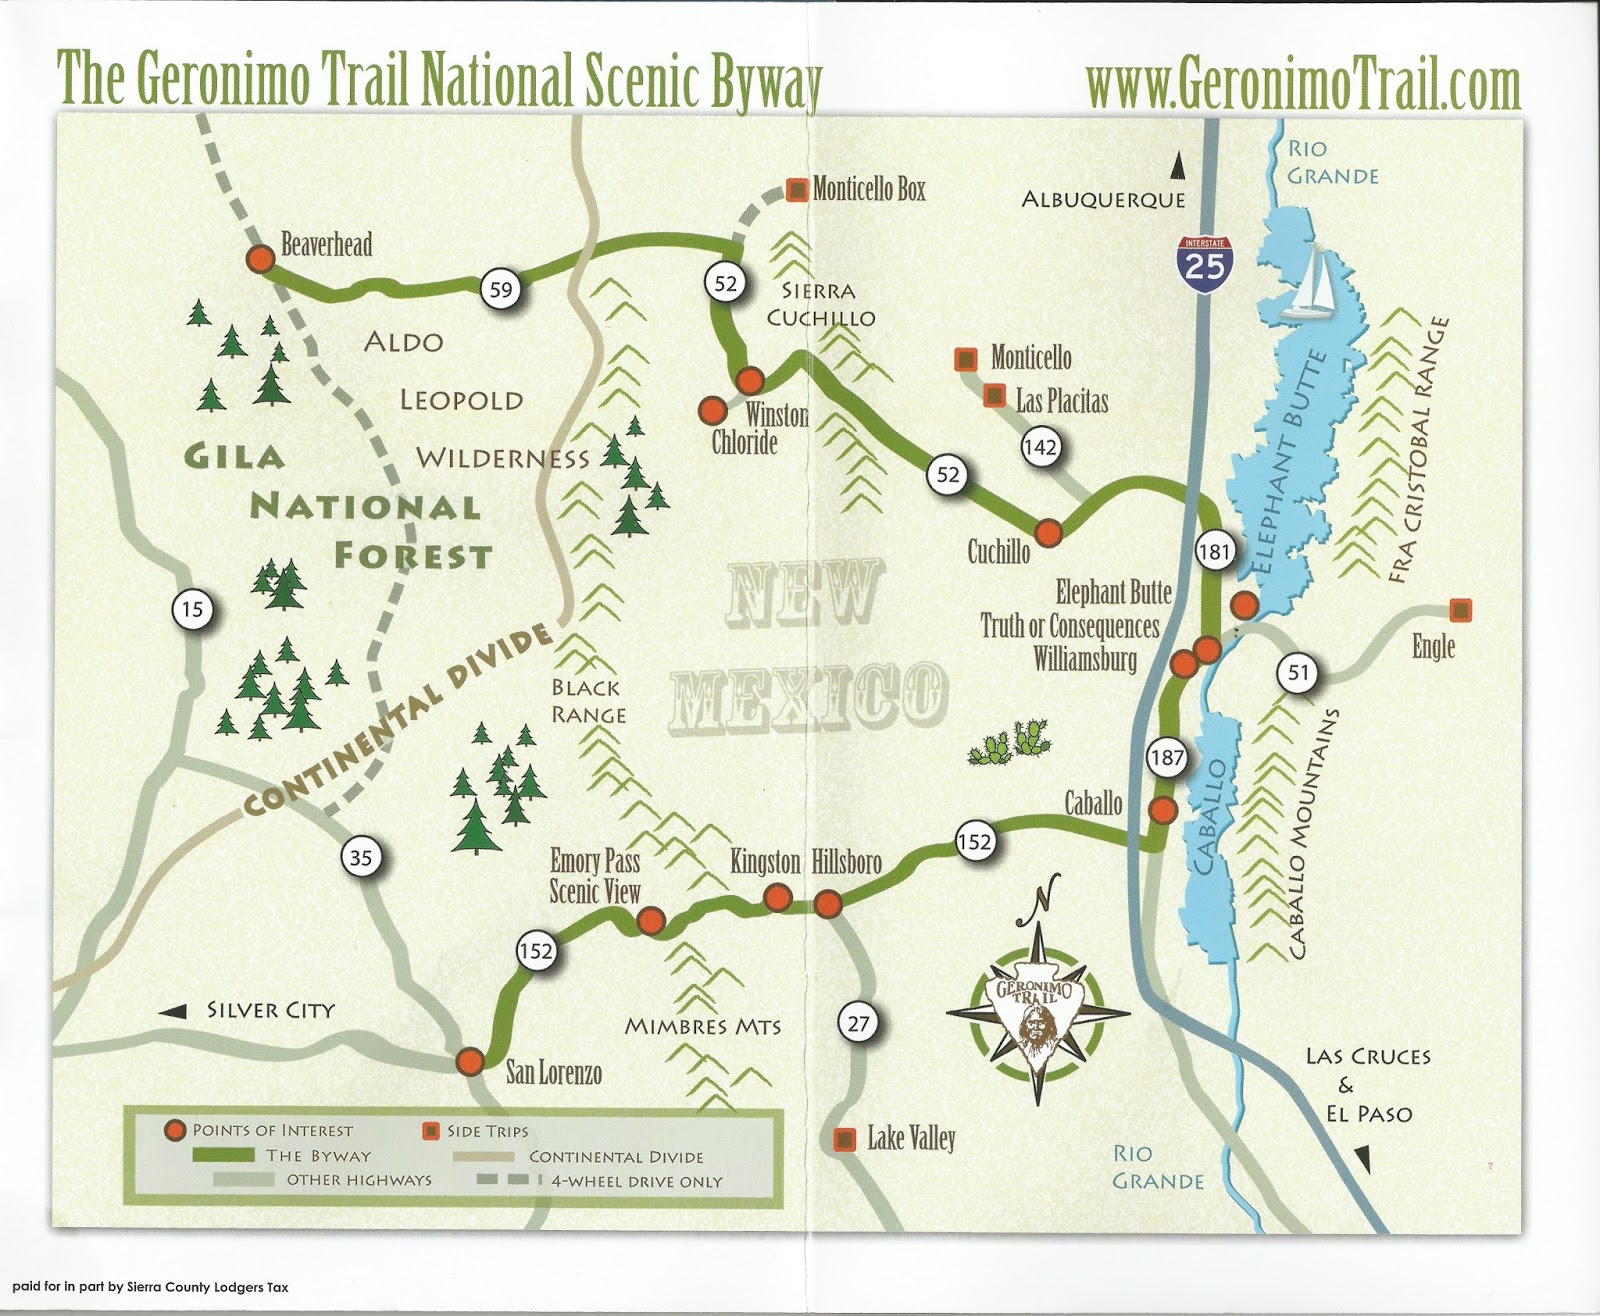 the geronimo trail national scenic byway